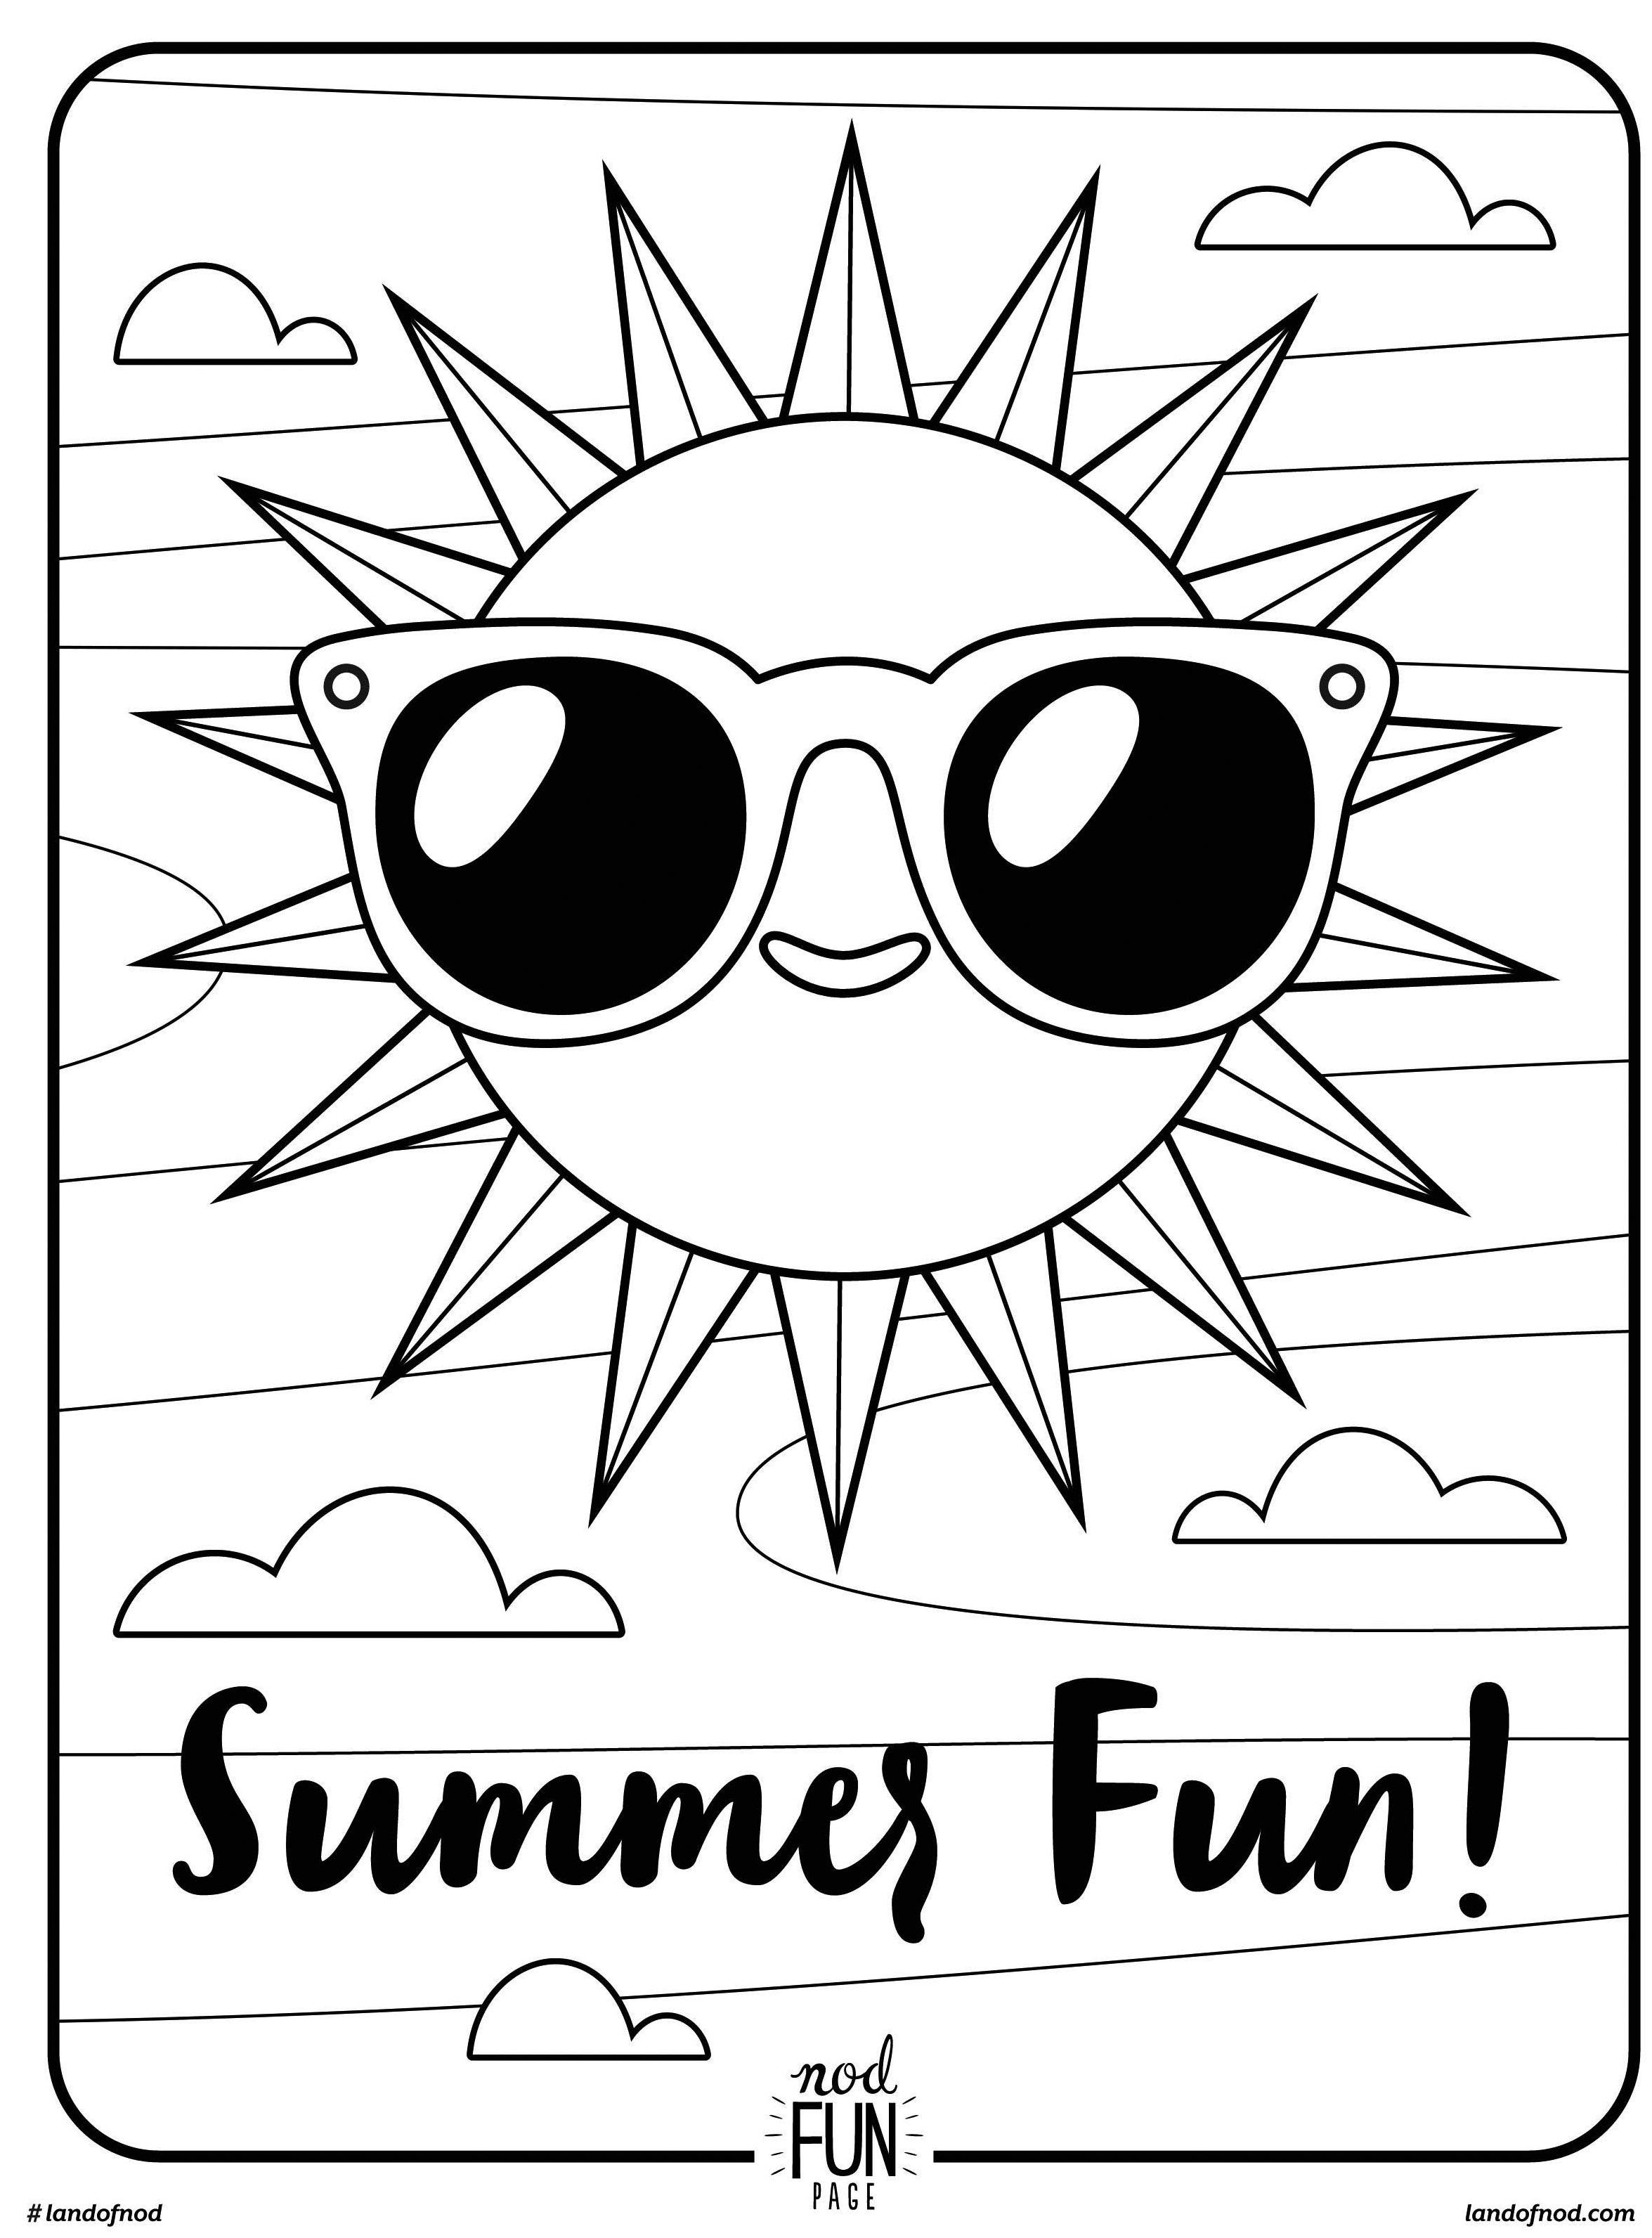 Free Printable Coloring Page: Summer Fun | Summer | Pinterest - Summer Coloring Sheets Free Printable